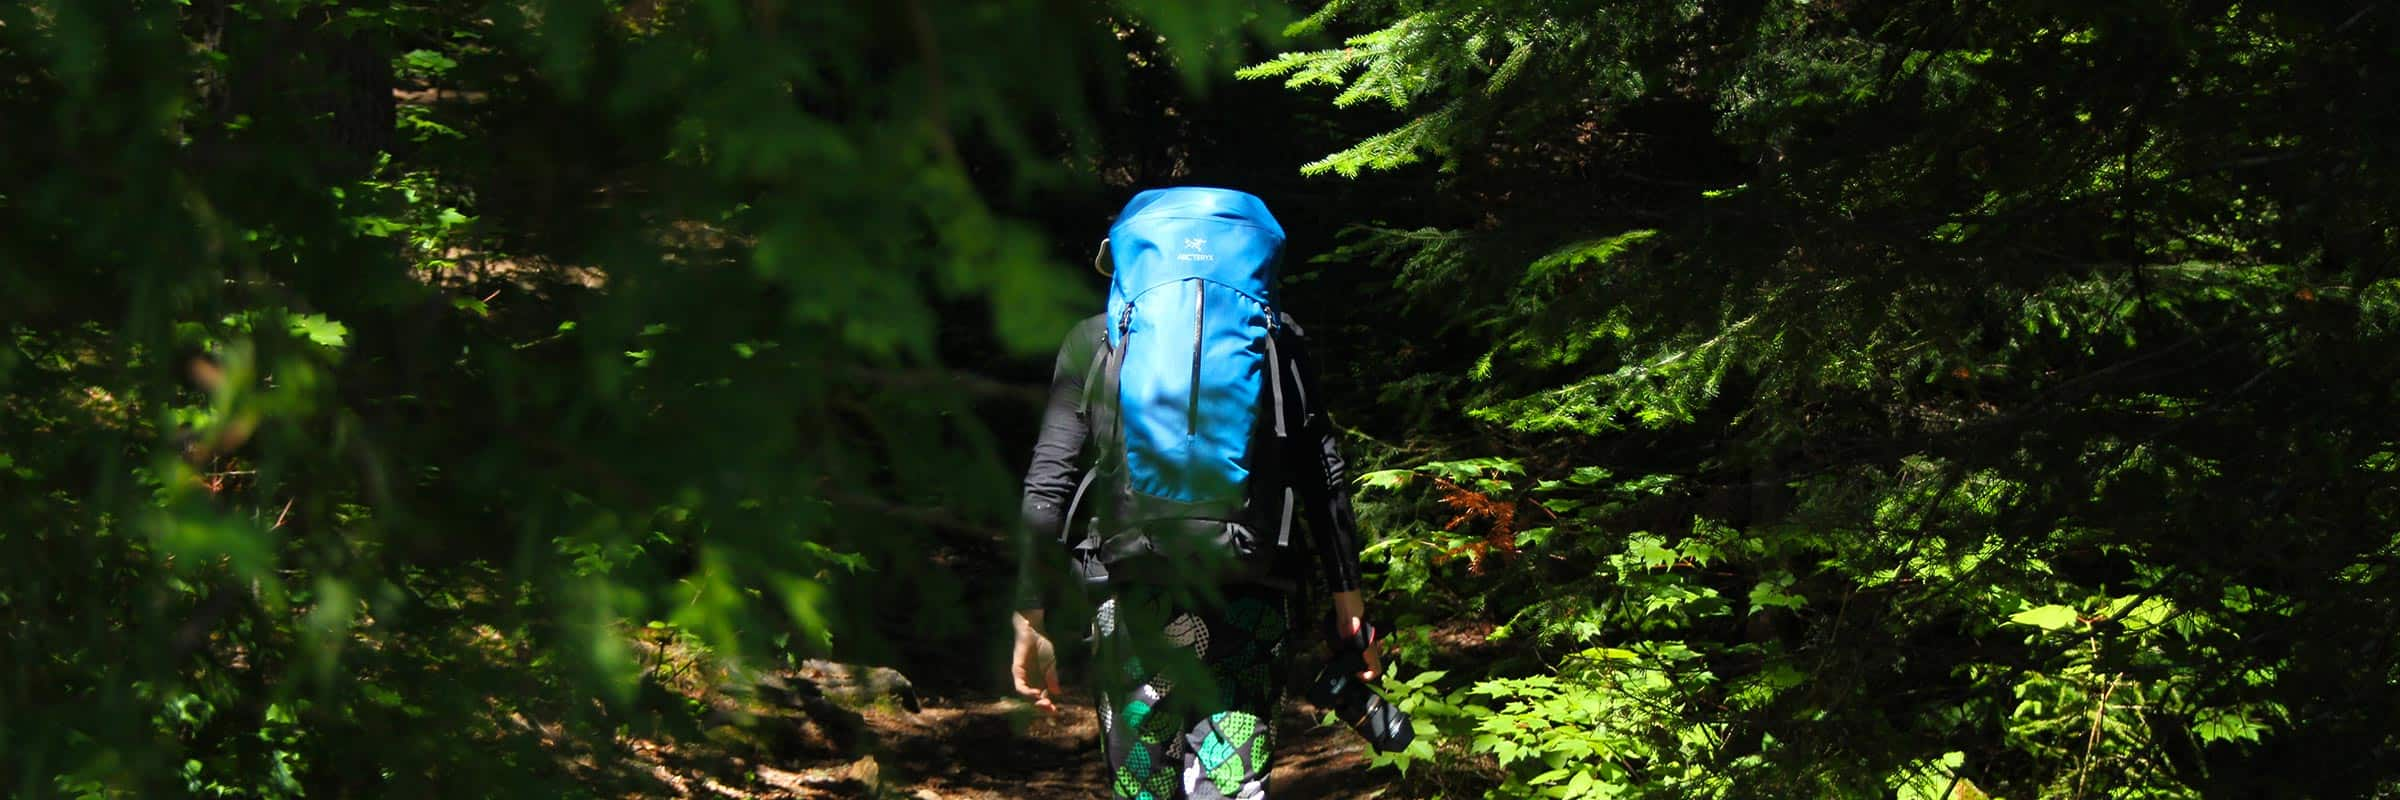 Arc'teryx, Gregory, Marmot, Osprey. Top Backpacks for Multi-Day Hikes